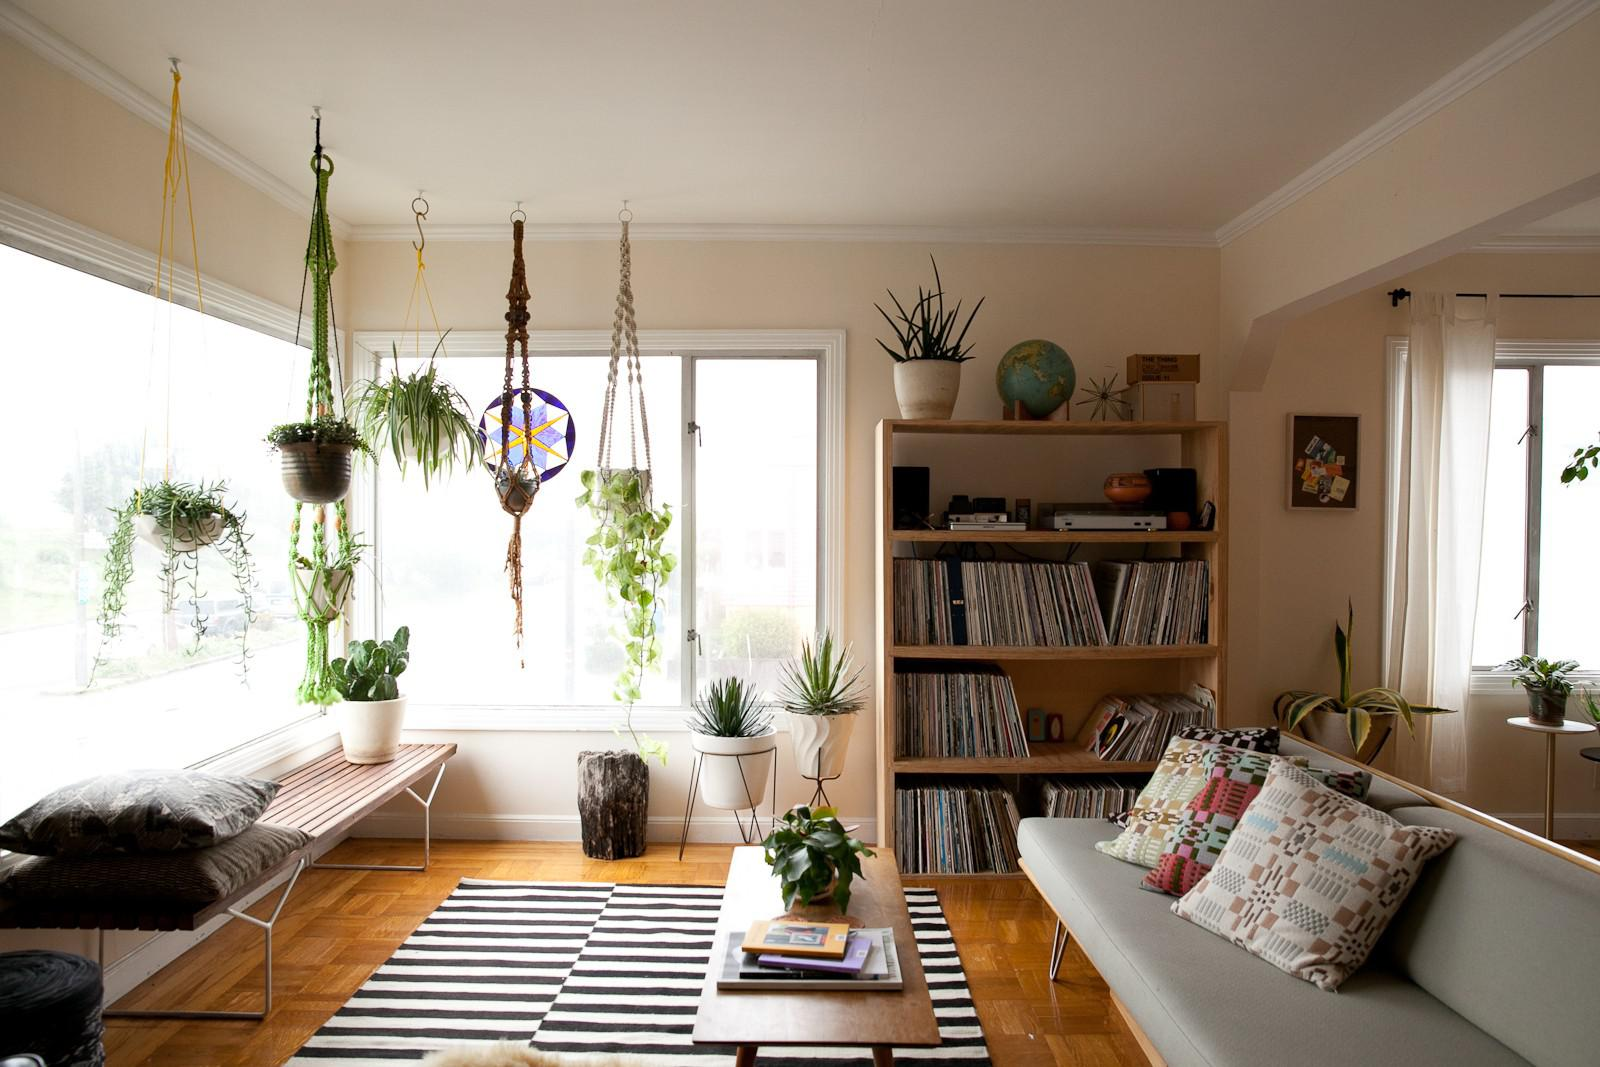 Big Plants For Living Room Decorating Our Homes With Plants Interior Design Explained